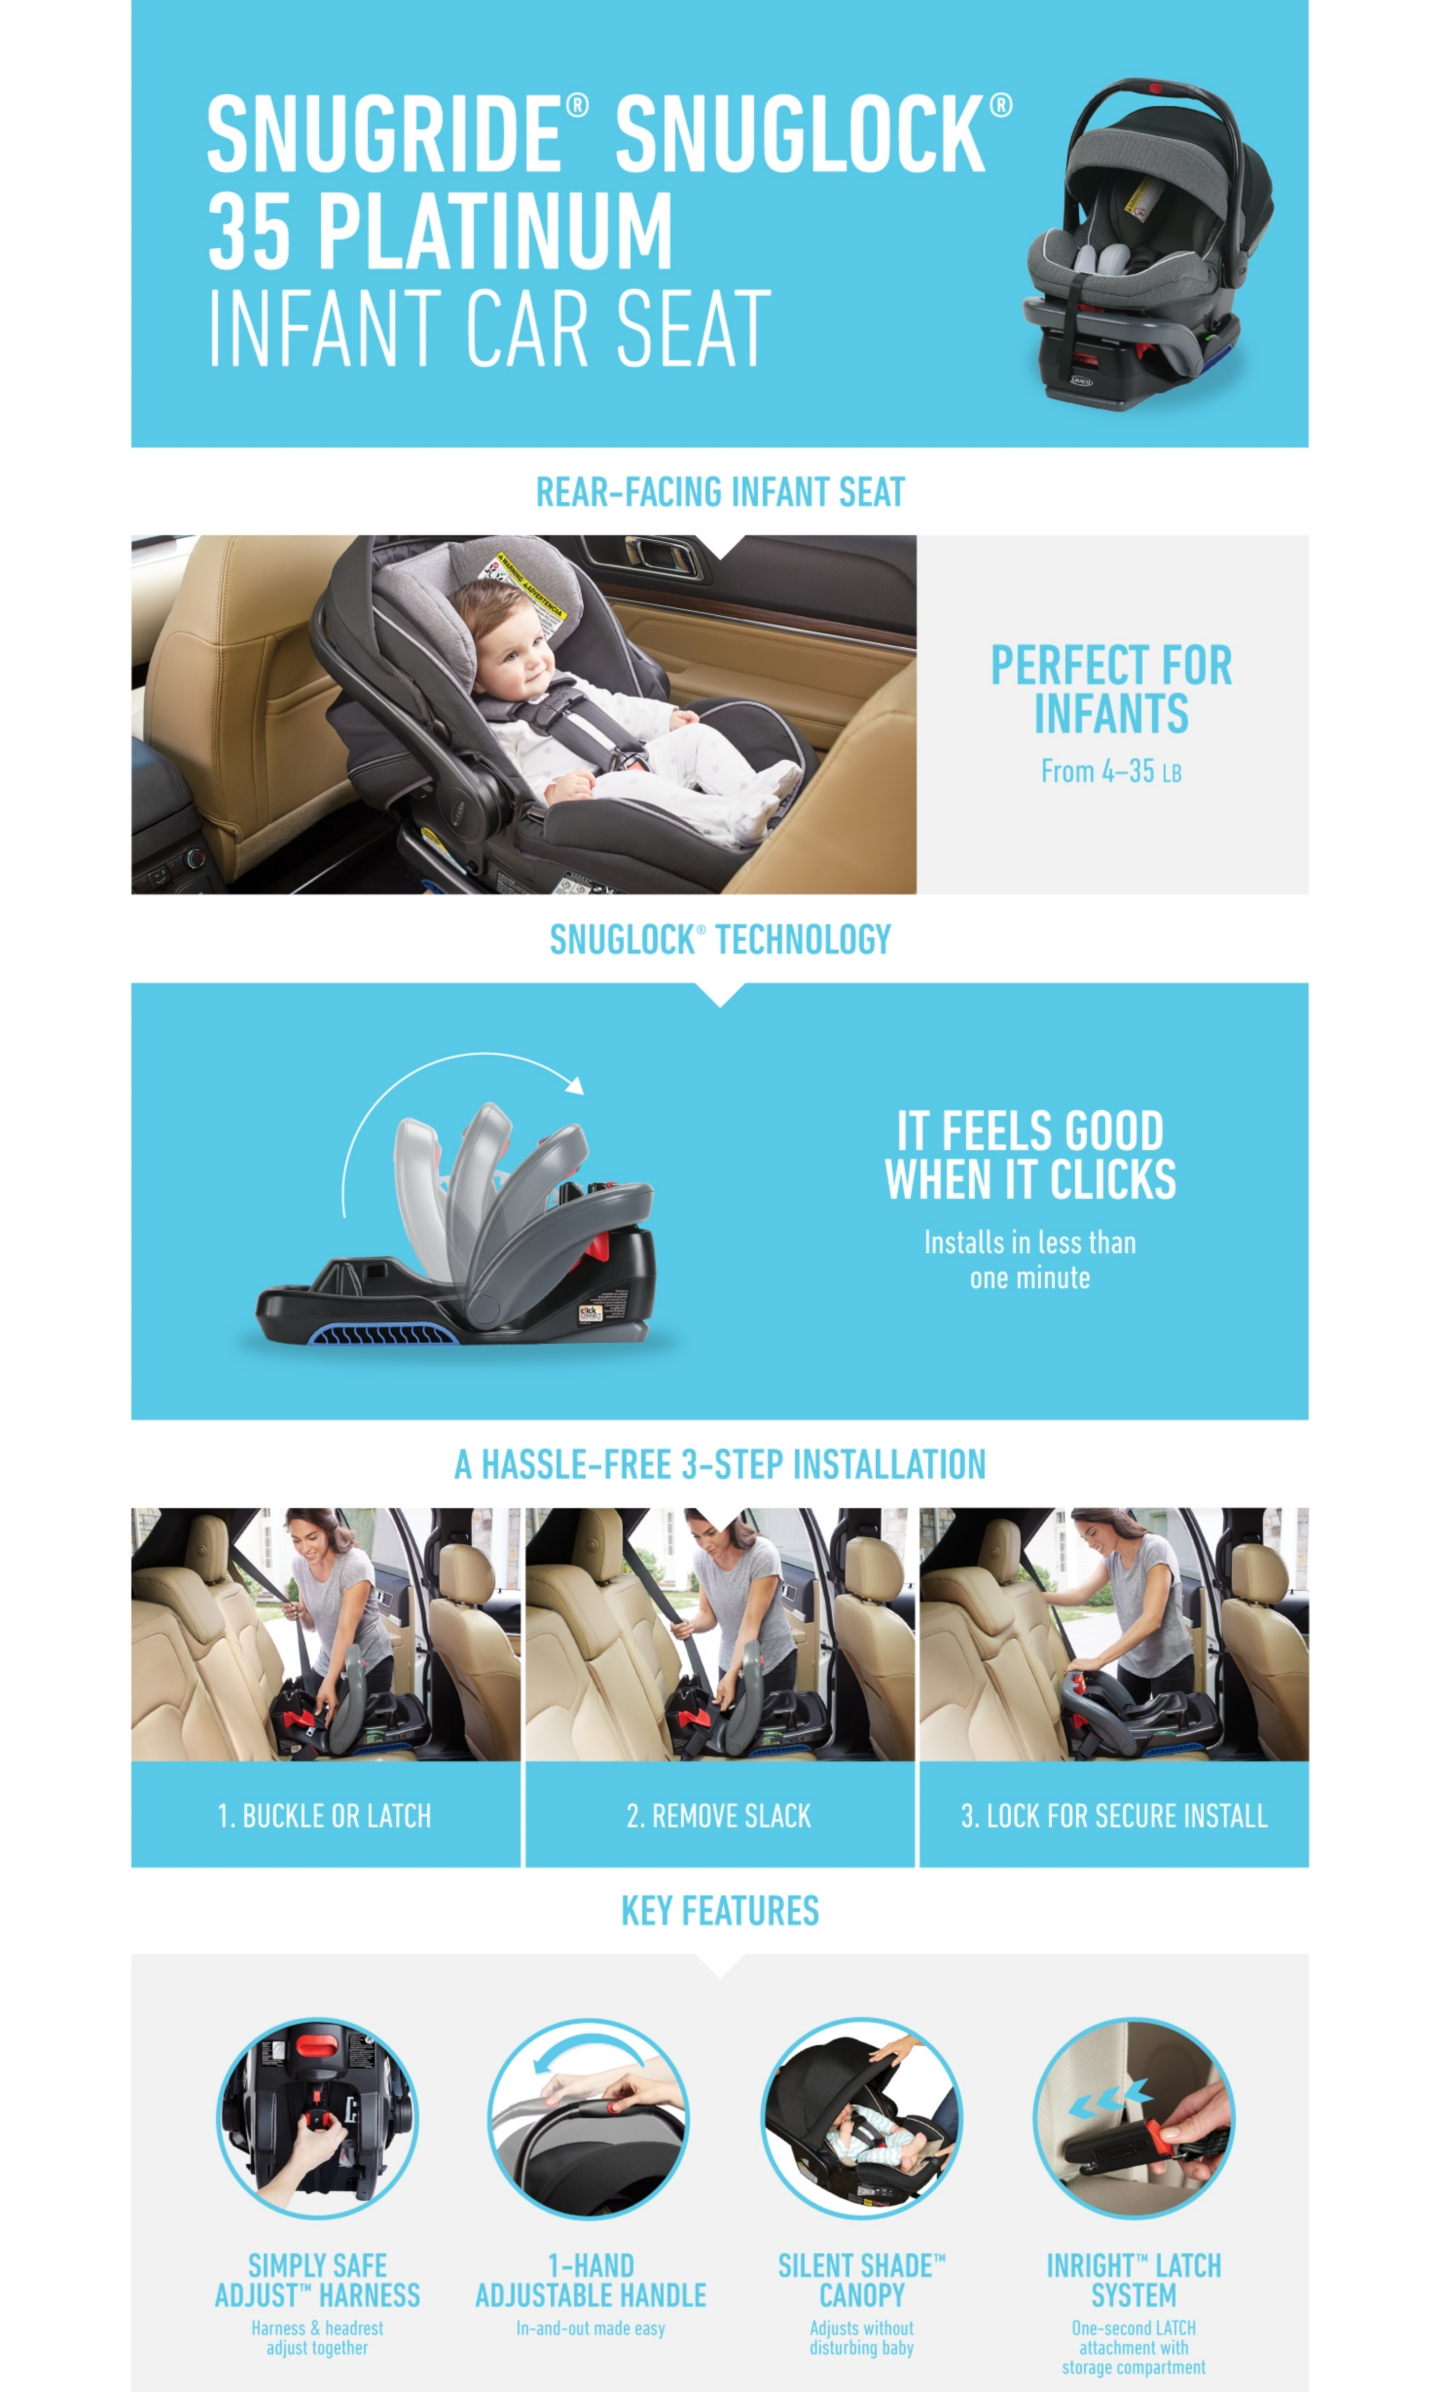 SnugRide Snuglock 35 Platinum Infant CarSeat